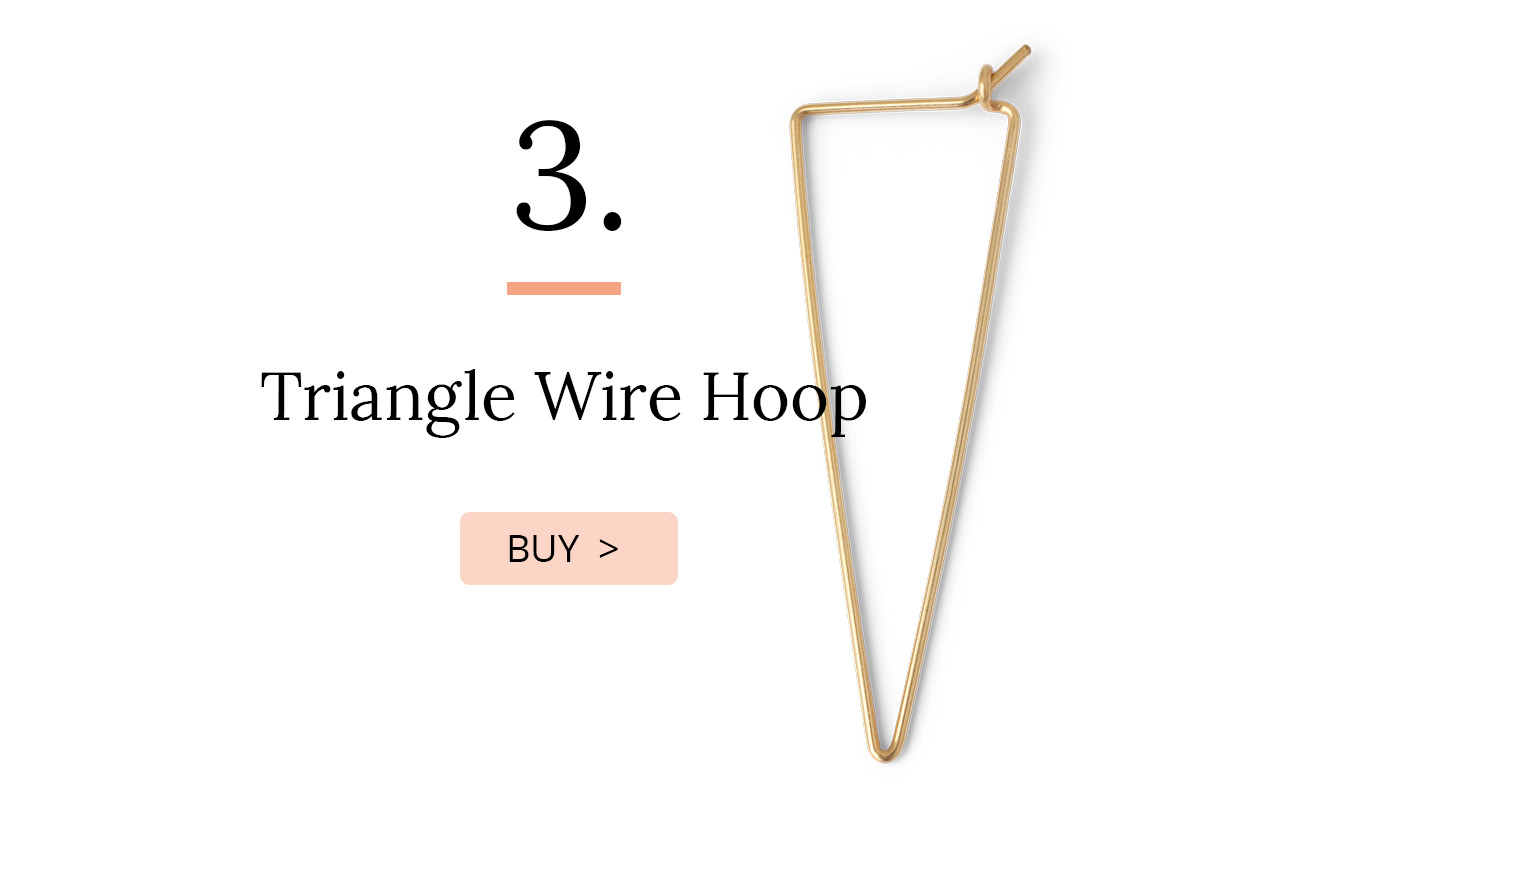 Triangle Wire hoop